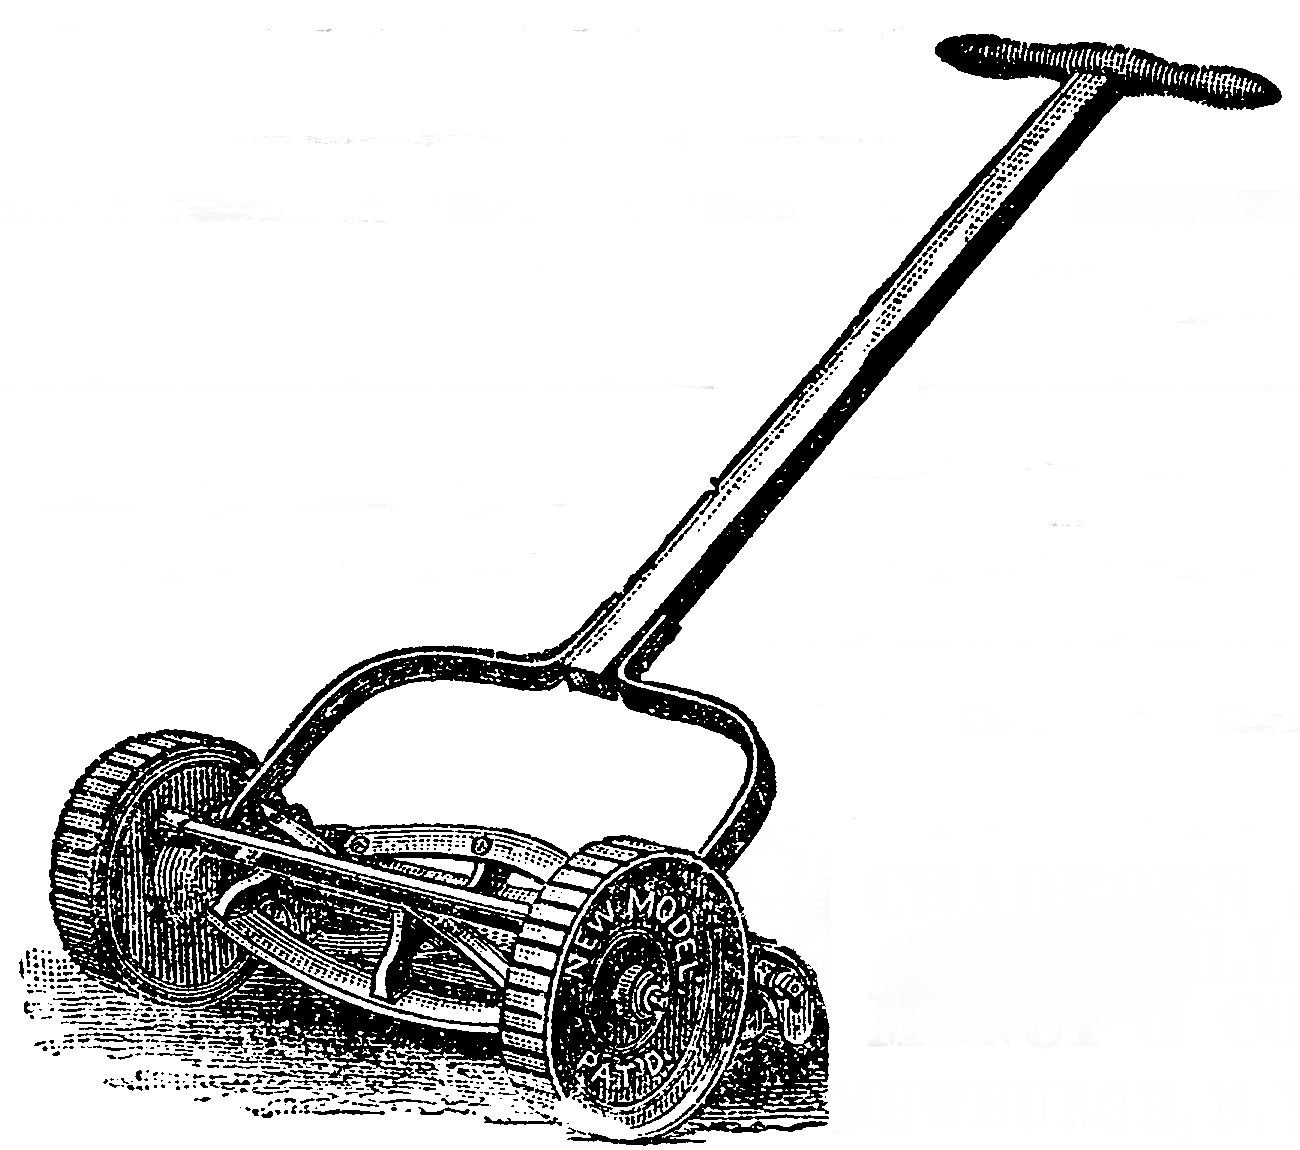 An early cylinder (reel) mower